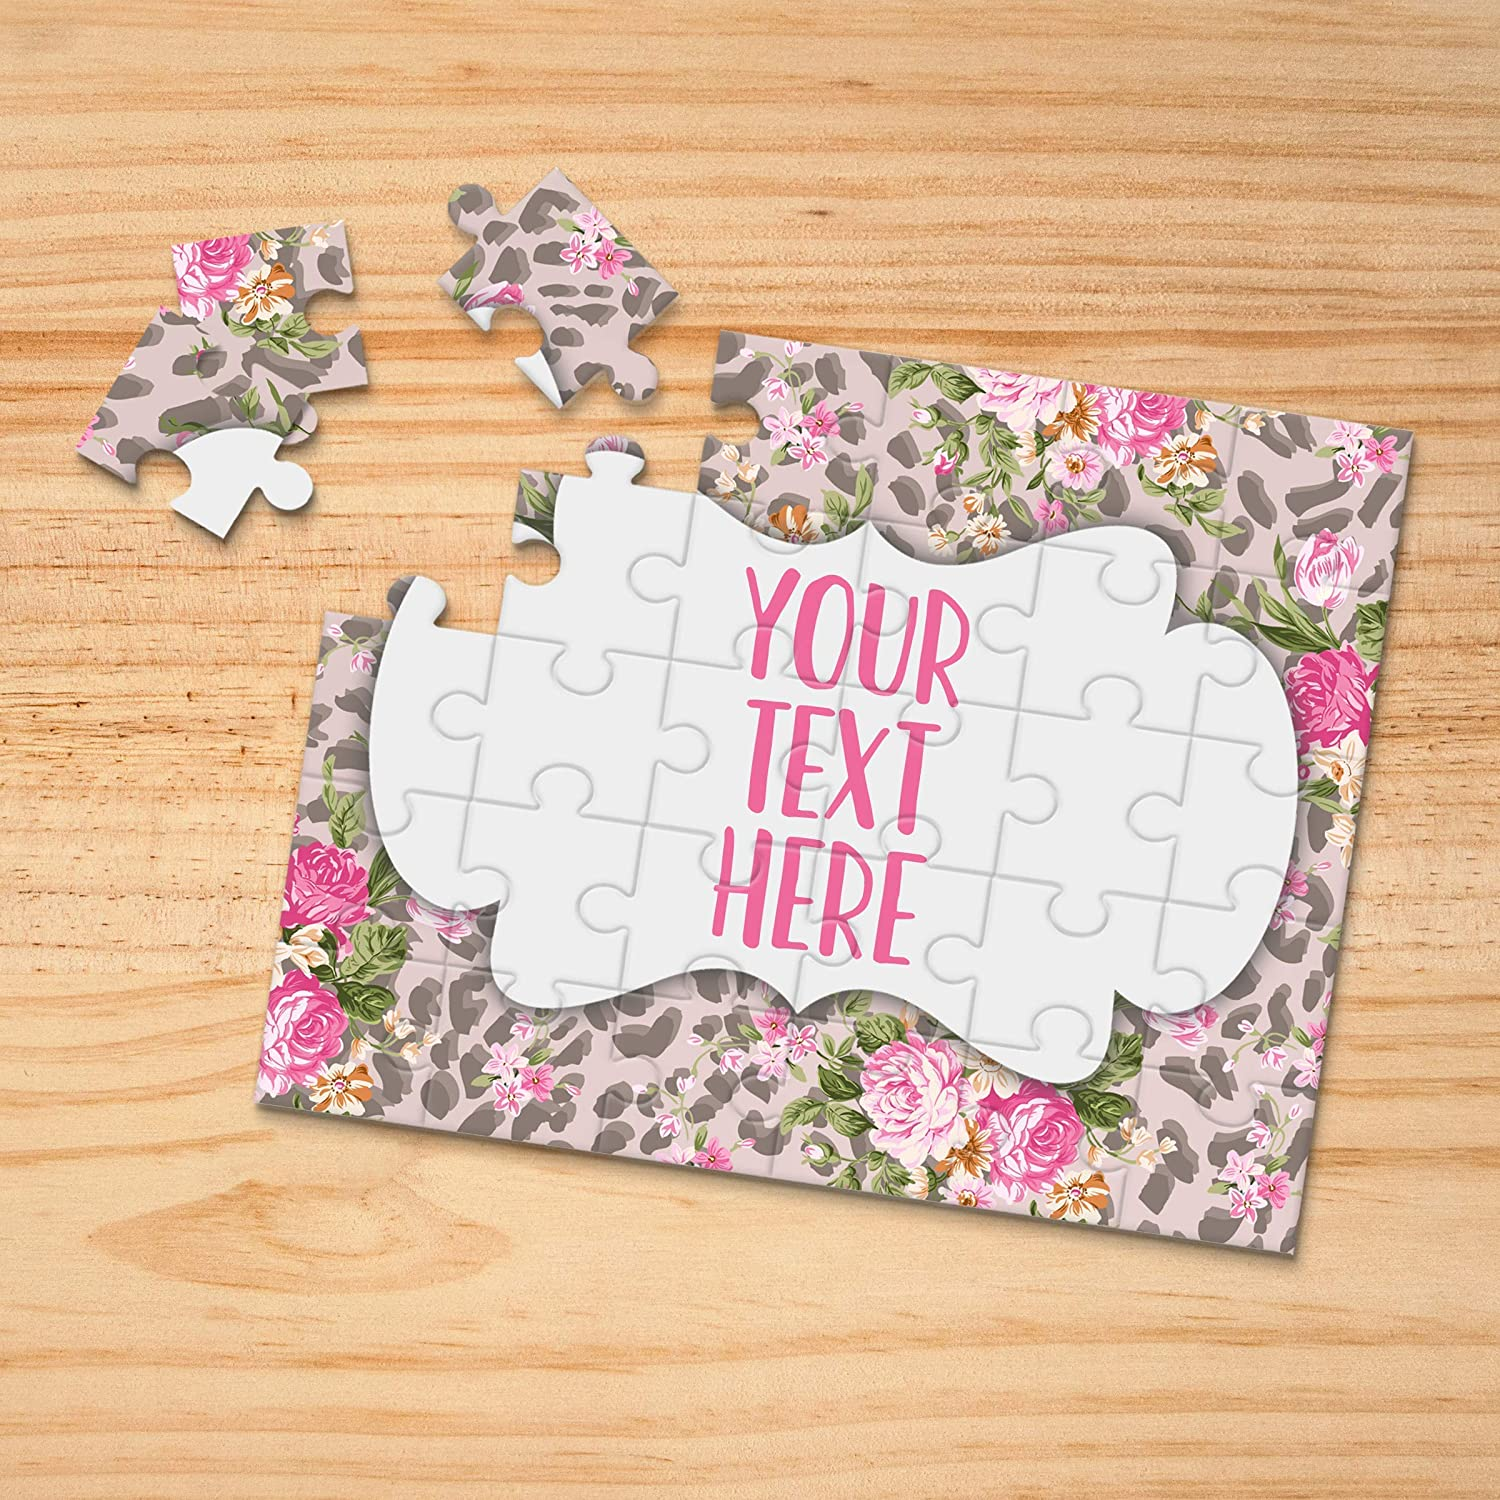 Create Your Own Puzzle Announcement Ideas CYOP0168 Wedding Announcement Pregnancy Announcement Personalized Puzzle Custom Puzzle